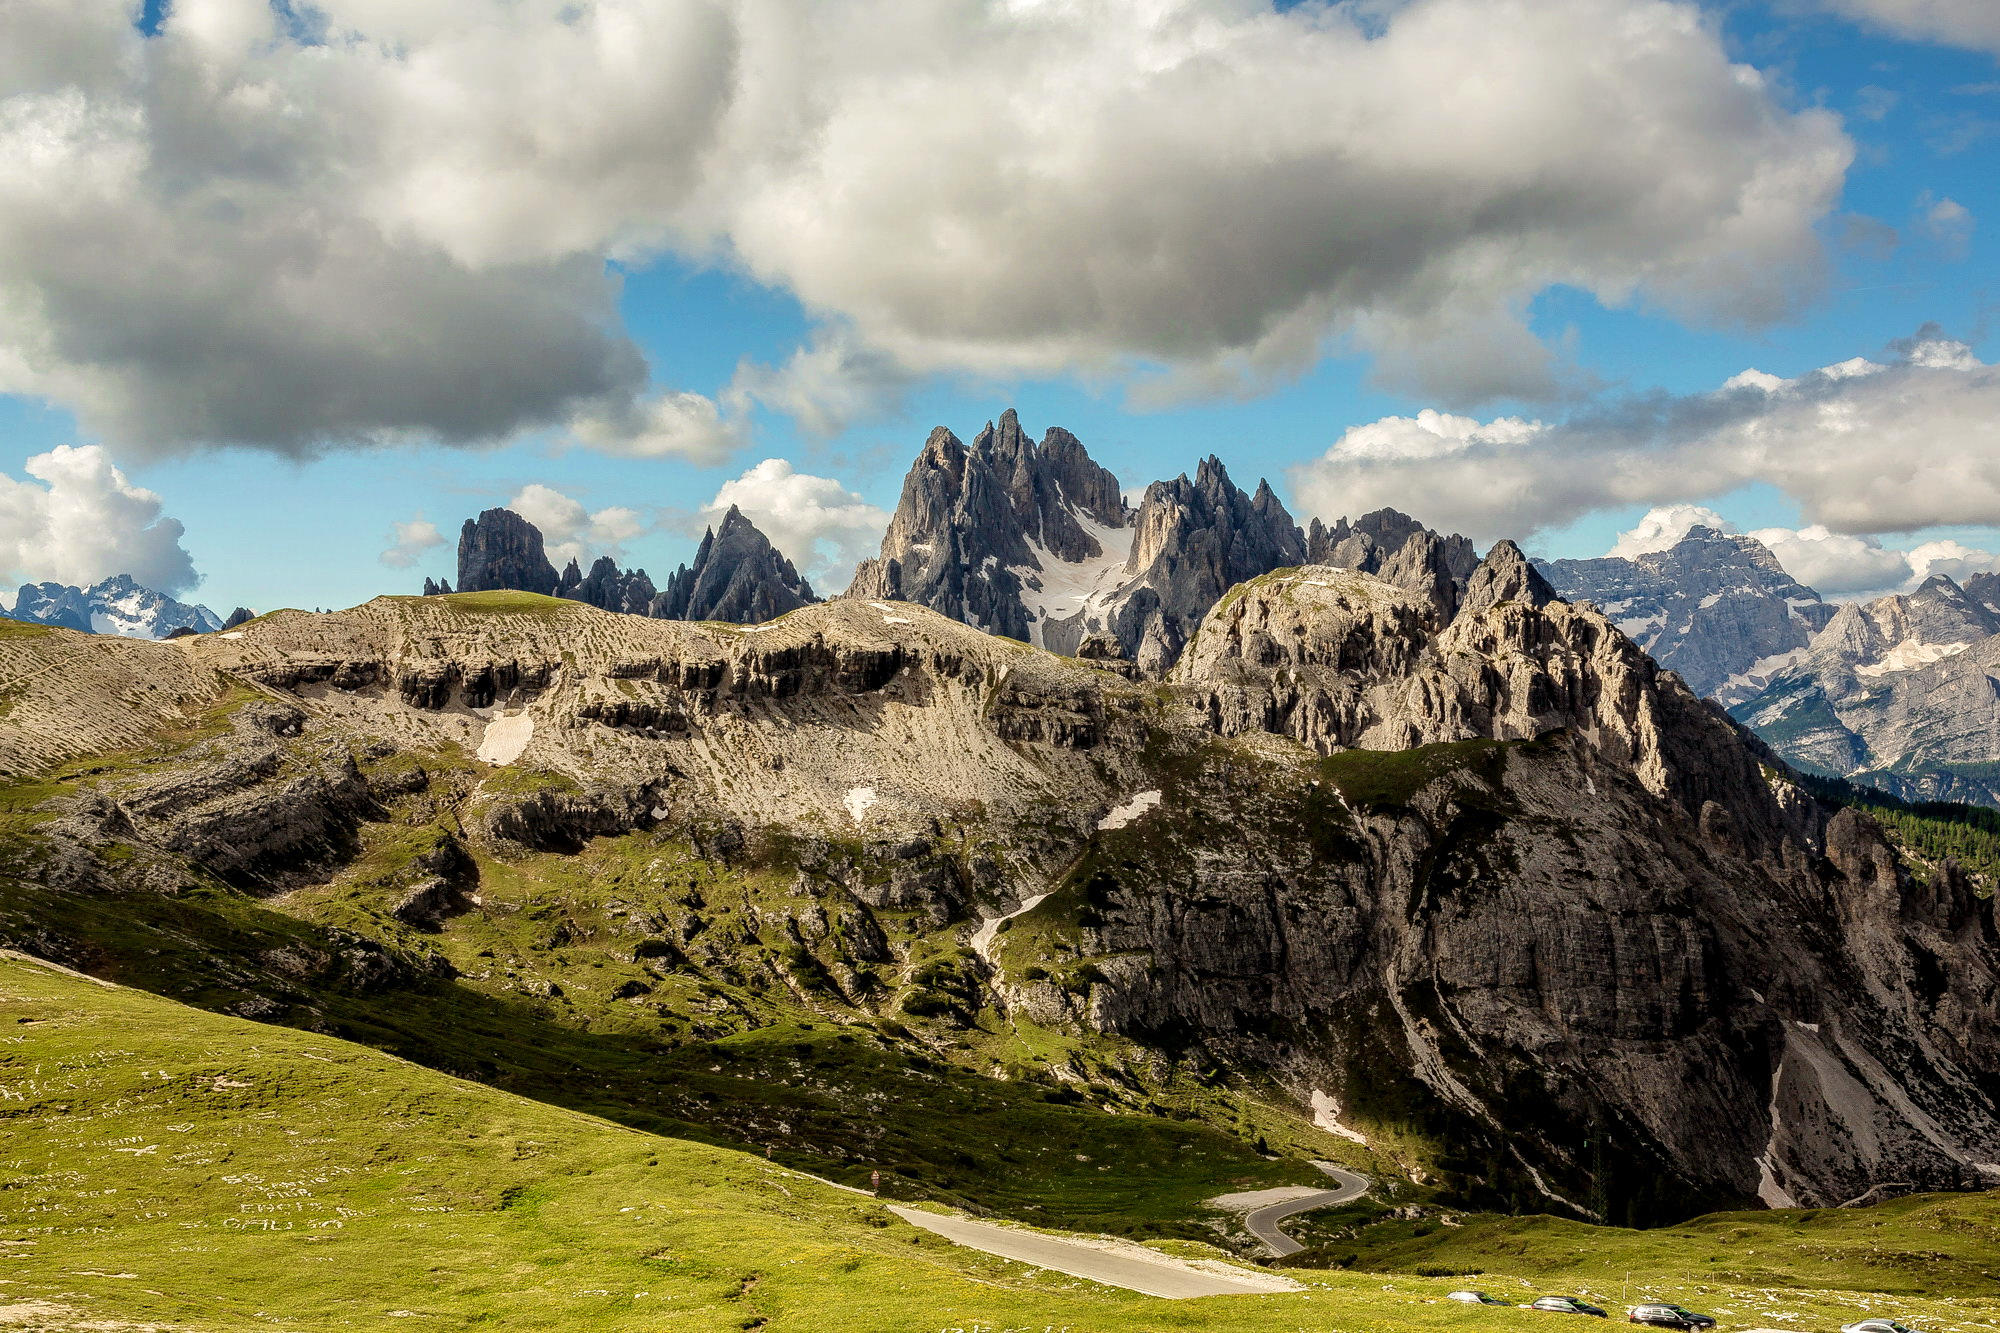 The Alps 2014-Italy-Dolomites 19